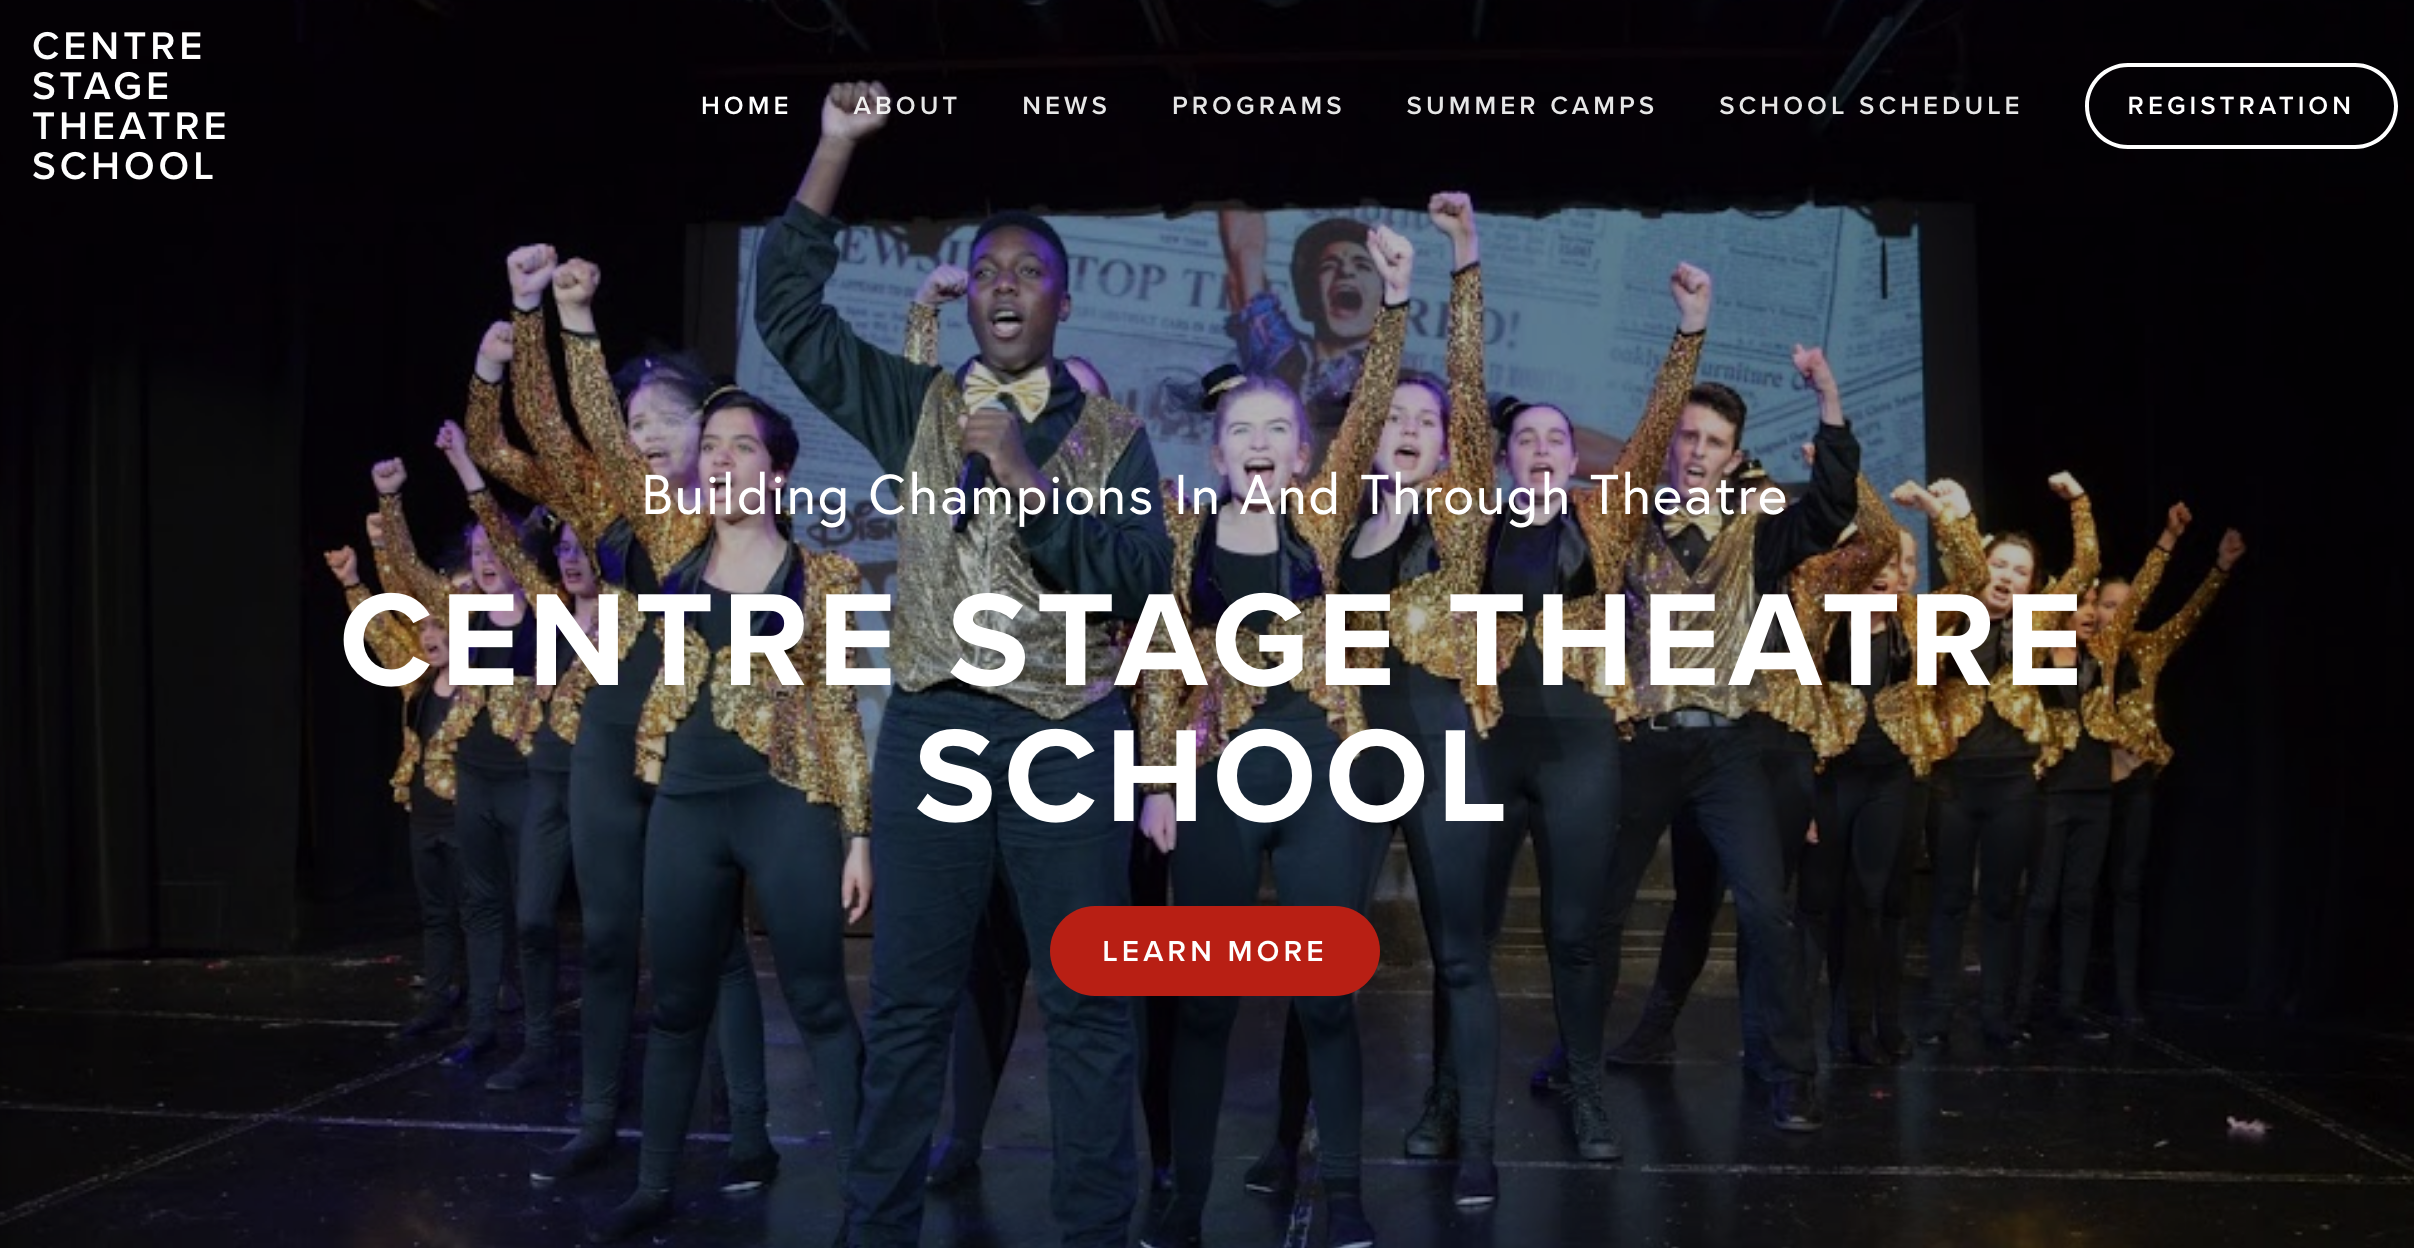 Interested in Theatre Programming? Visit our partner organization: Centre Stage Theatre School. -